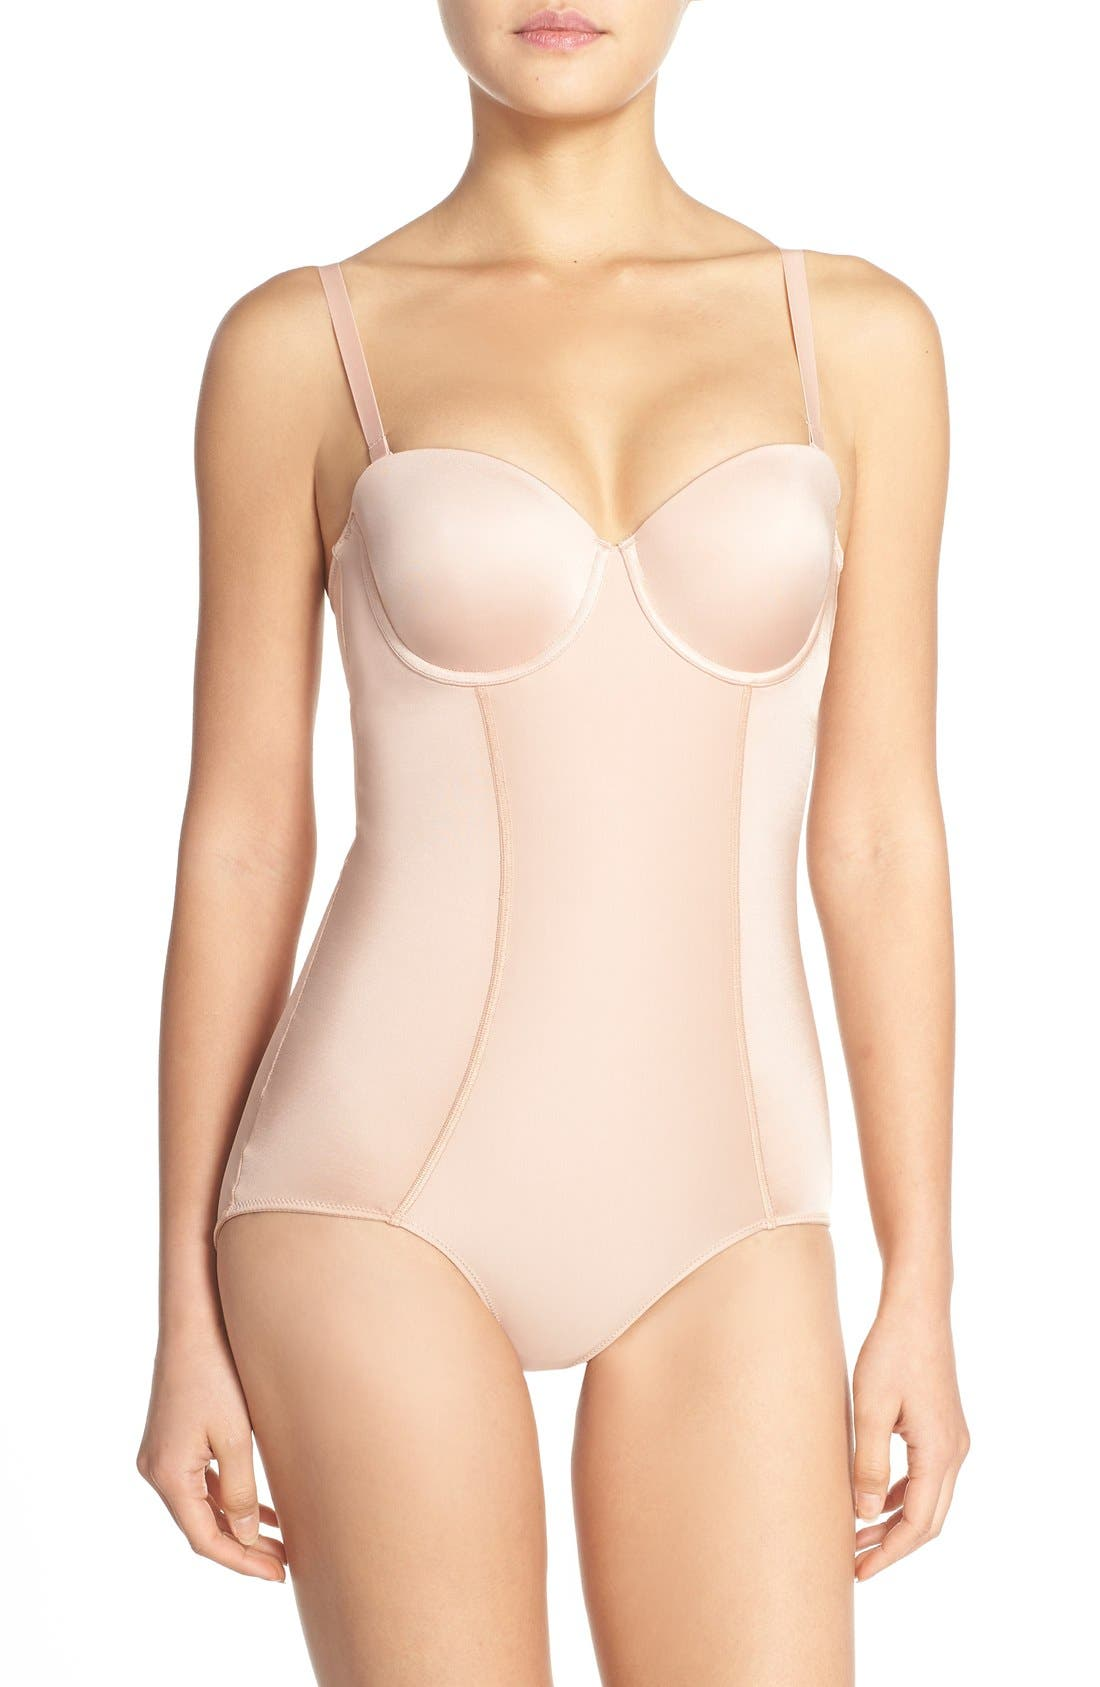 Main Image - SPANX® Boostie-Yay Slimming Bodysuit with Bra Top